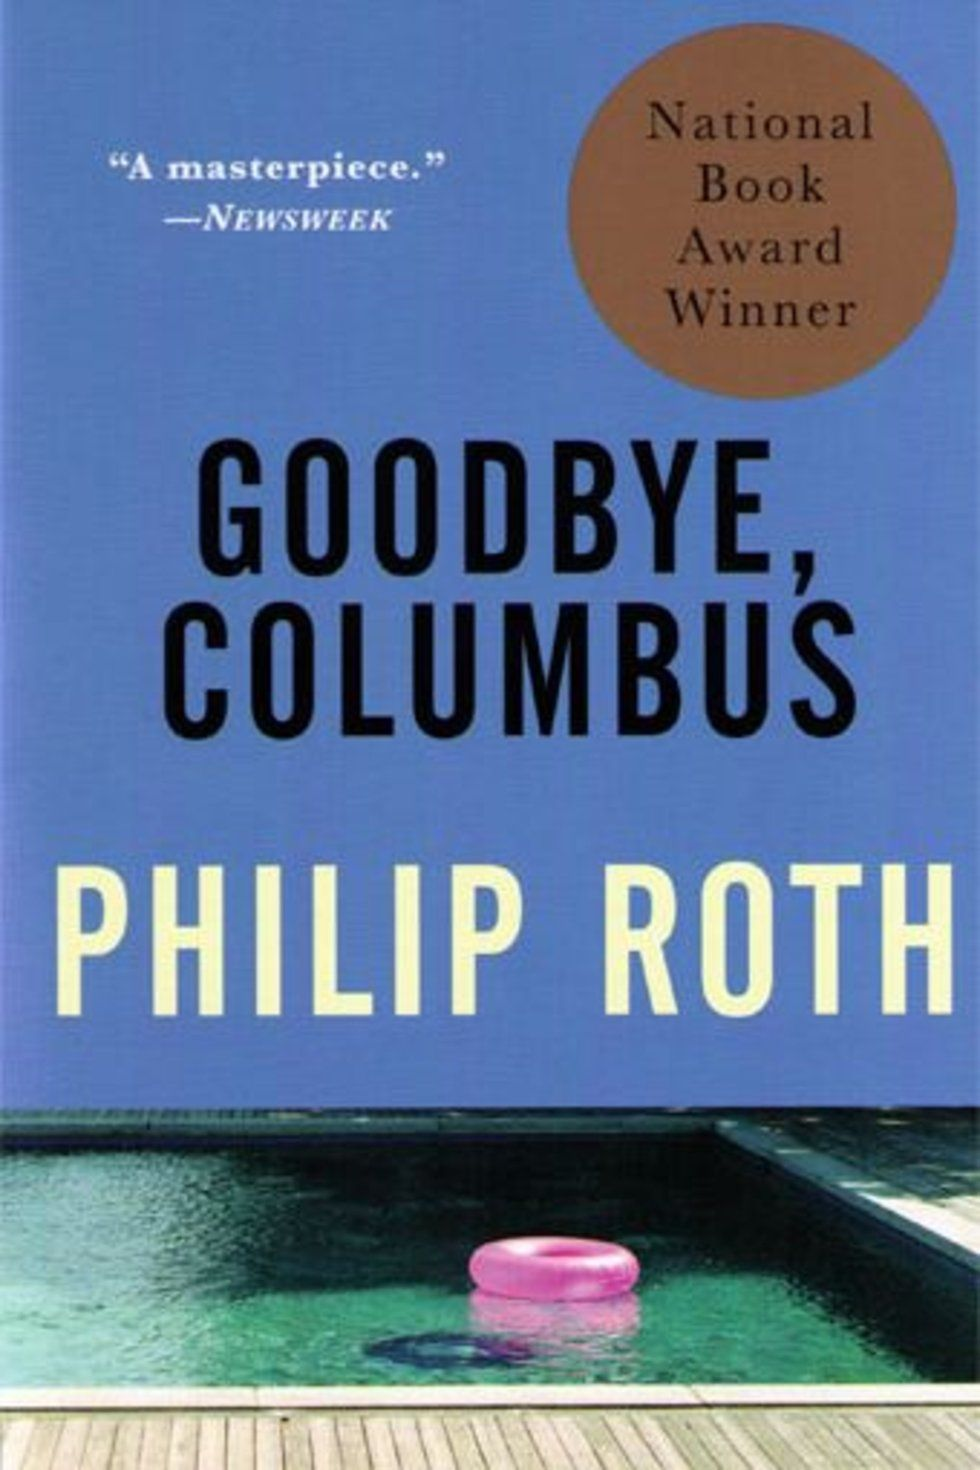 11 Goodbye, Columbus, by Philip Roth